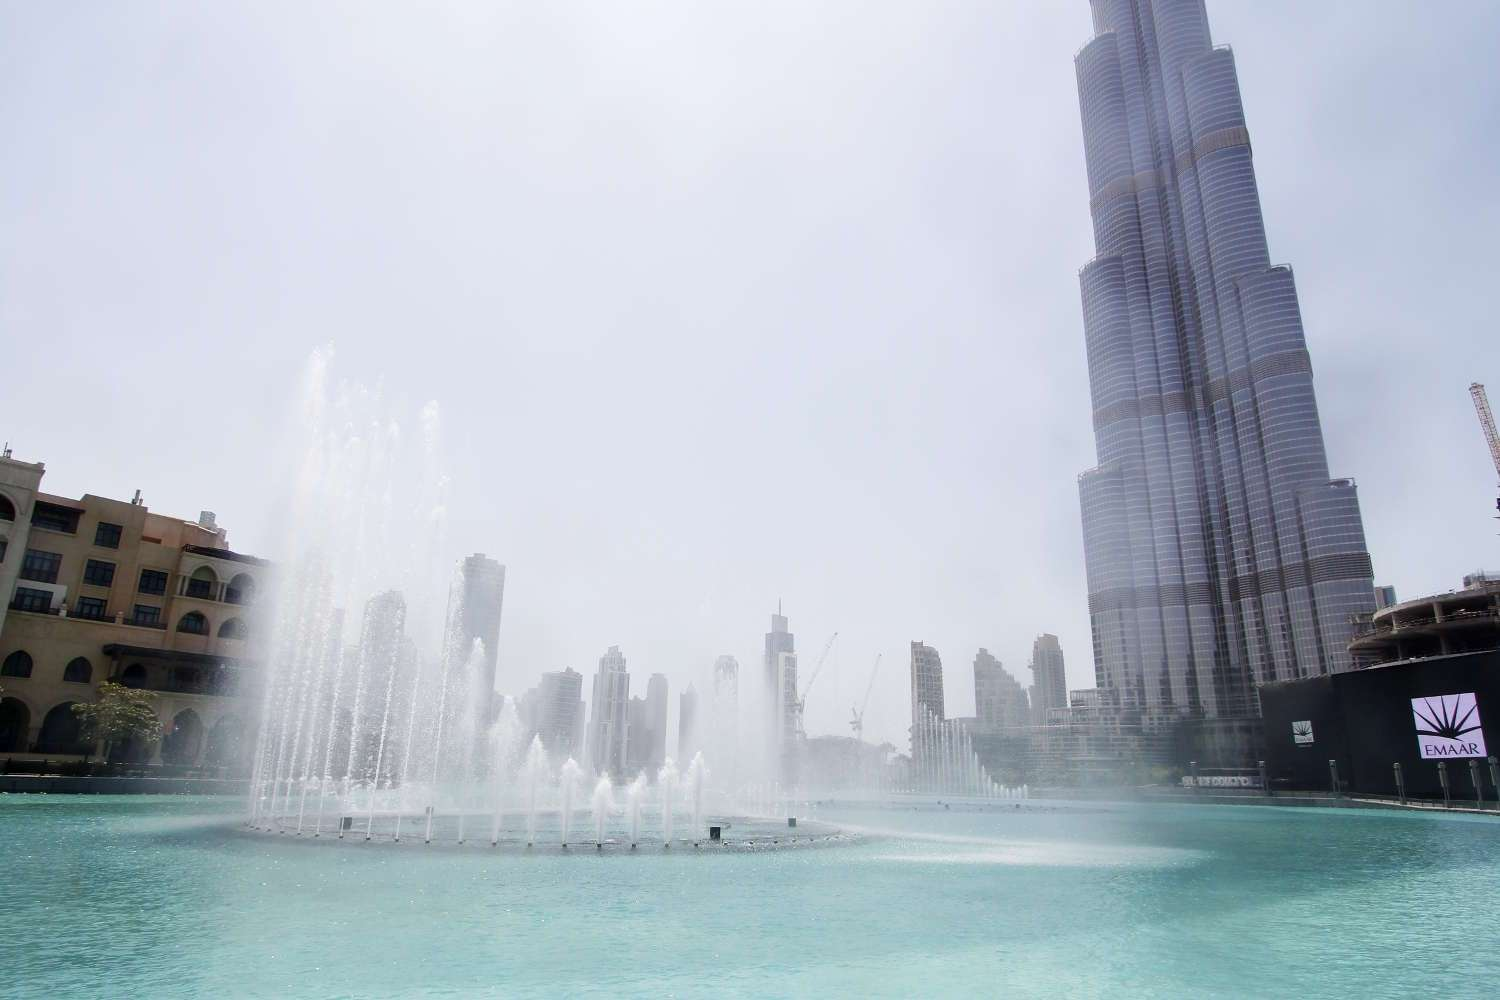 La Dubai Fountain en acción